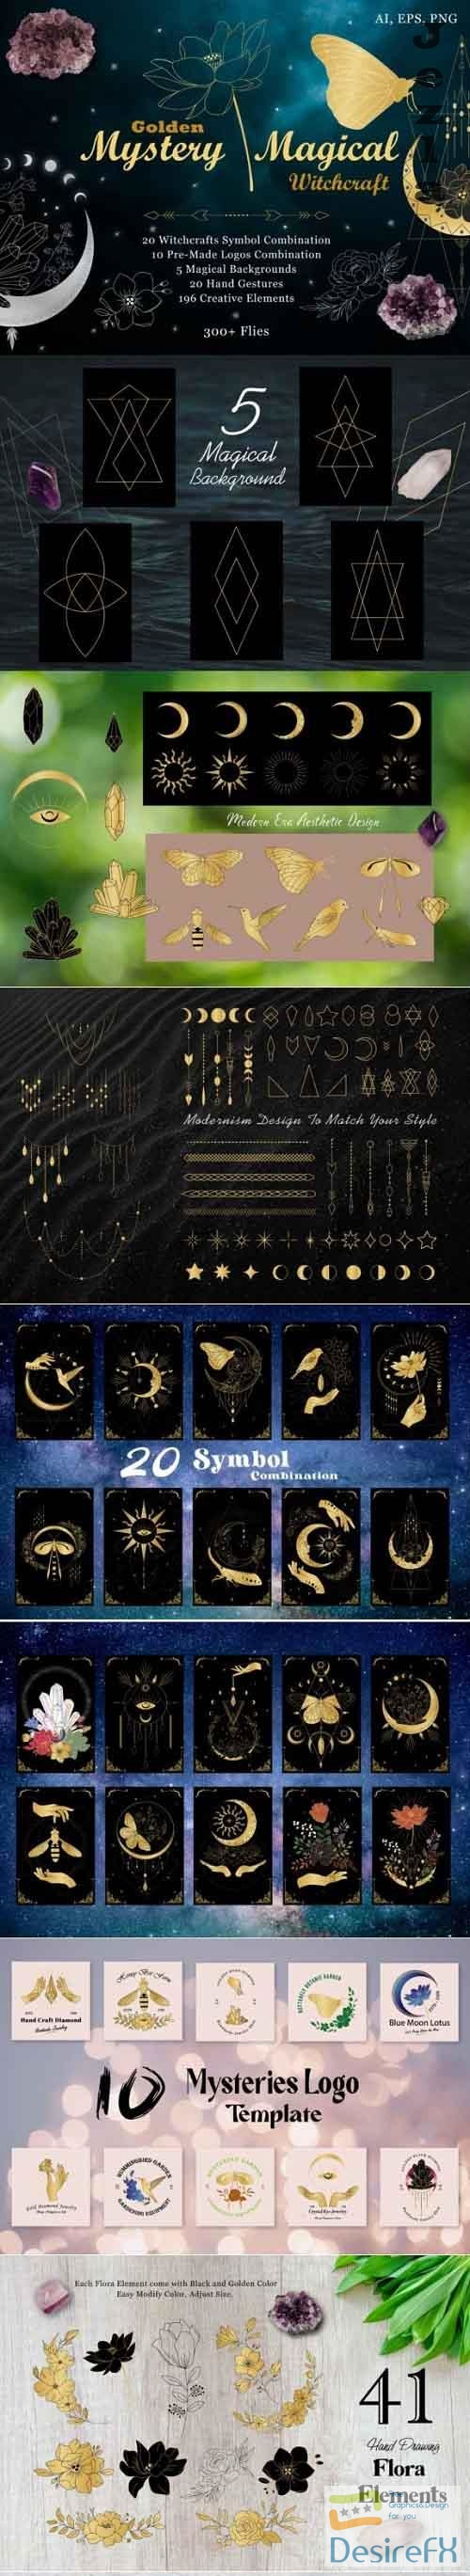 Golden Mystery Magical Witchcraft - 5352874